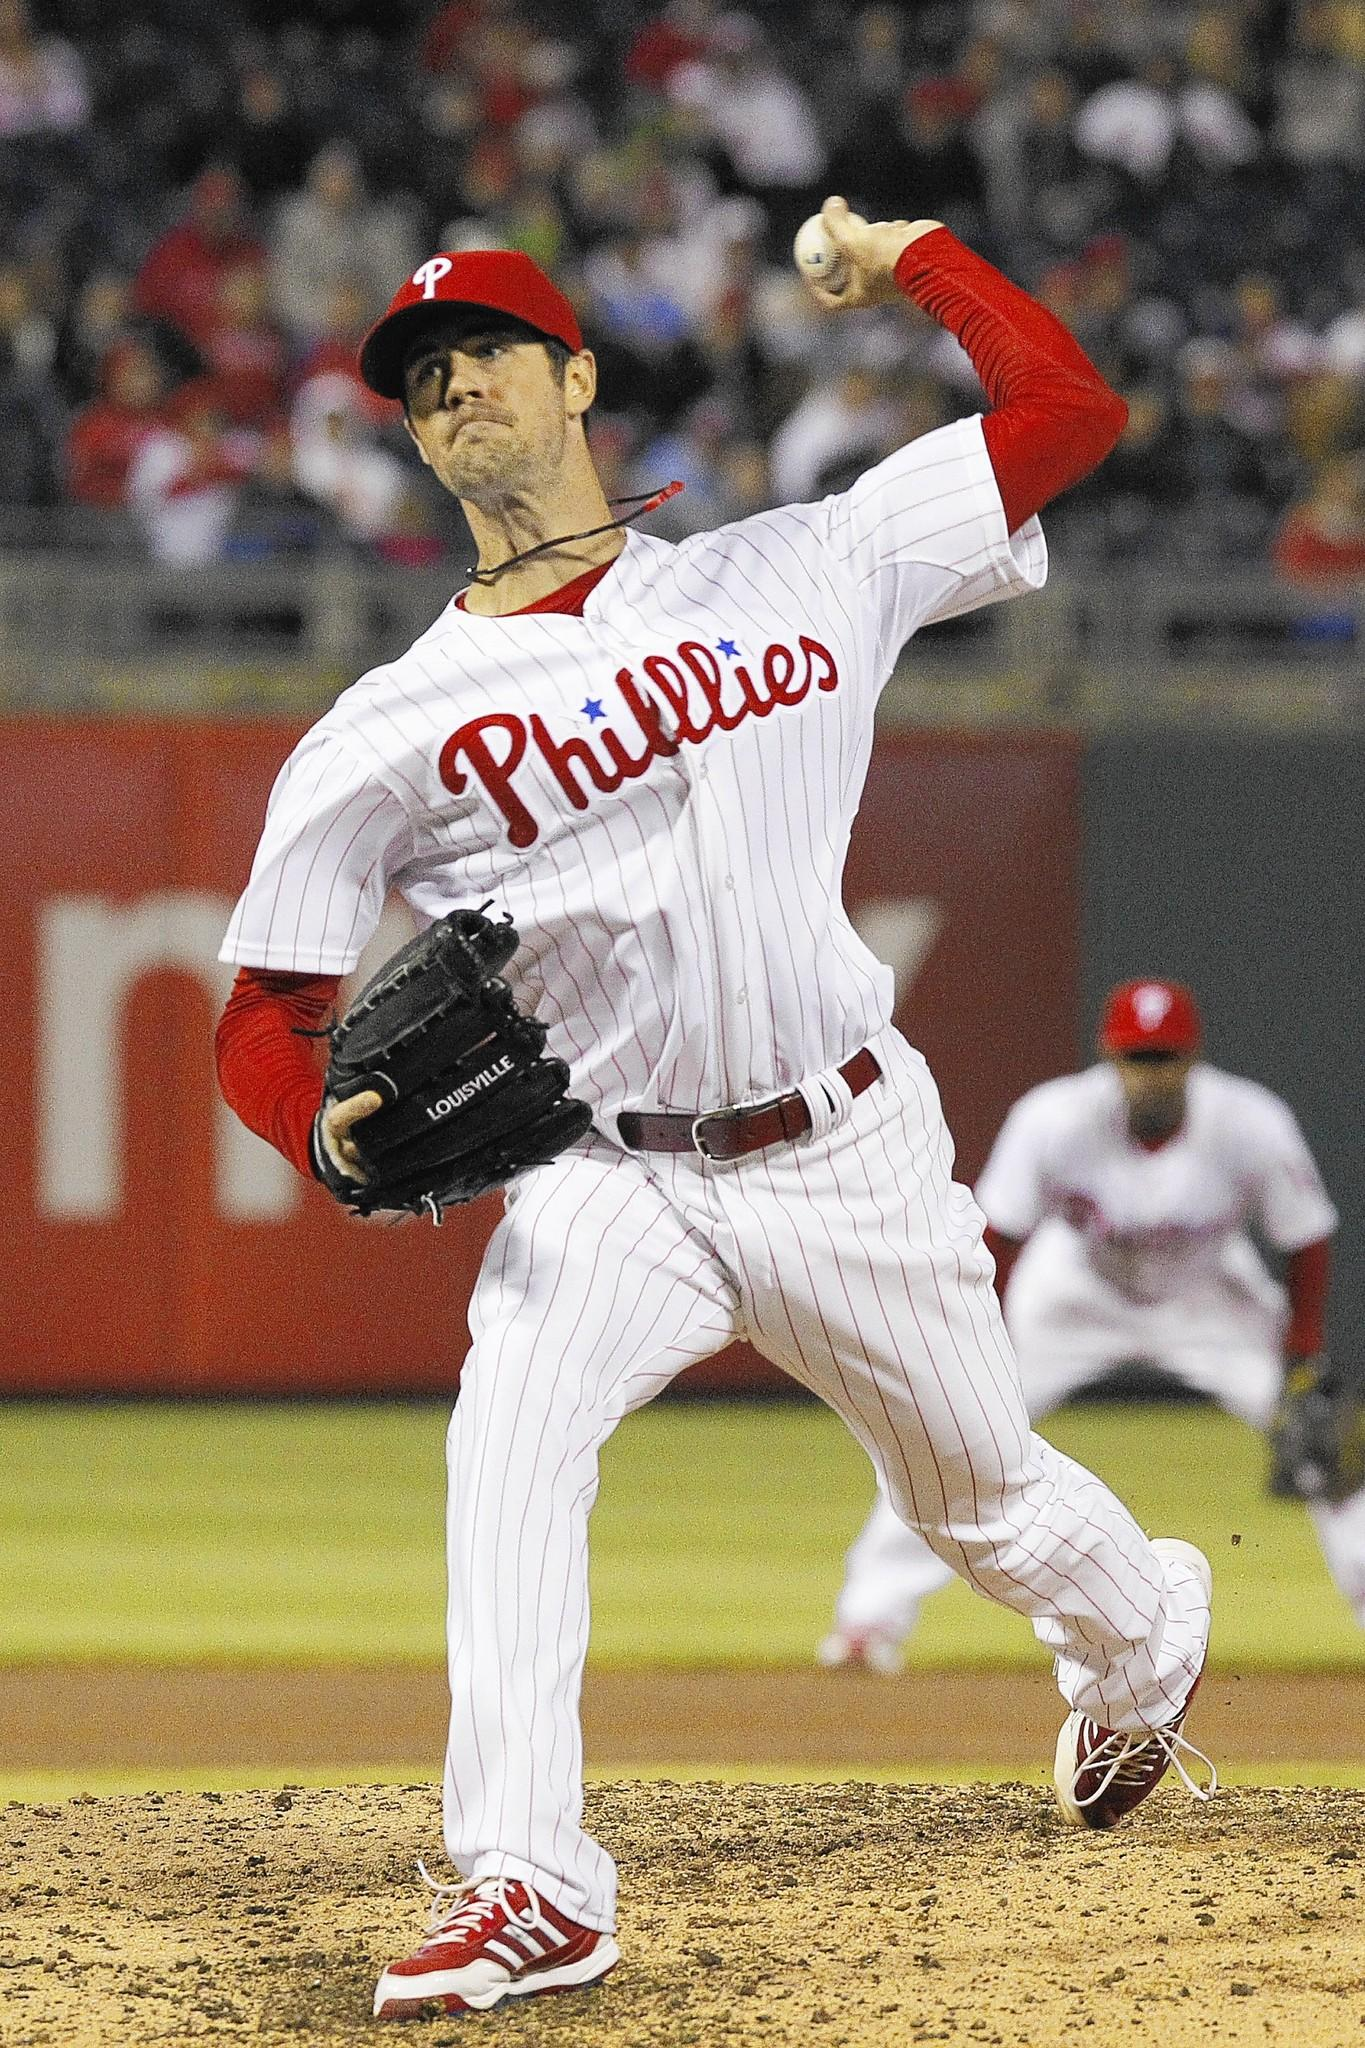 Phillies starting pitcher Cole Hamels is behind schedule this spring because of shoulder tendinitis.